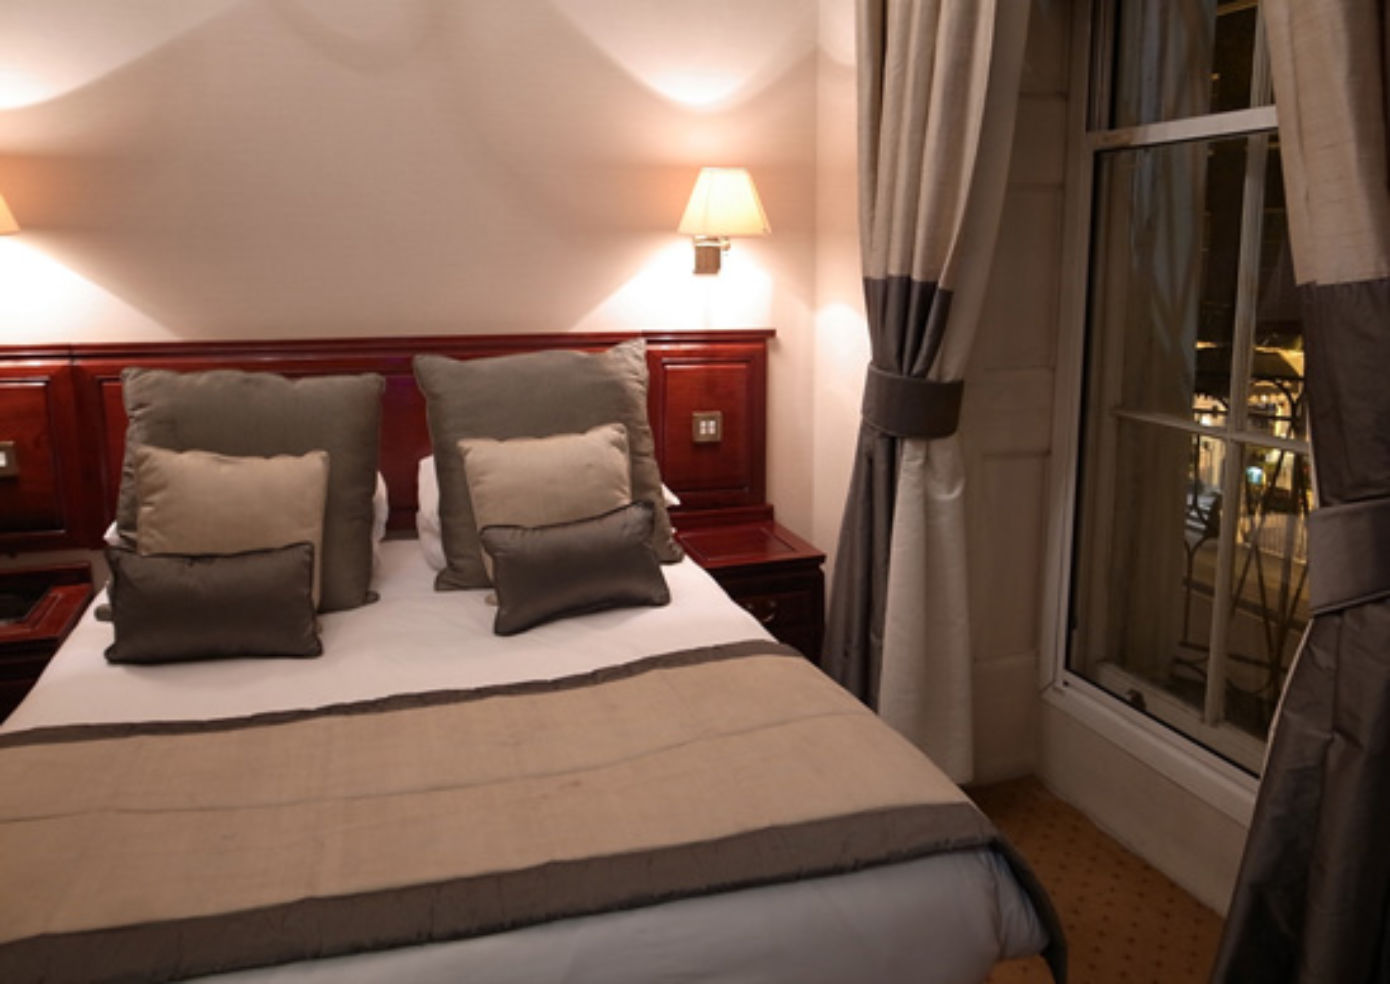 A guest room at Grange White Hall Hotel